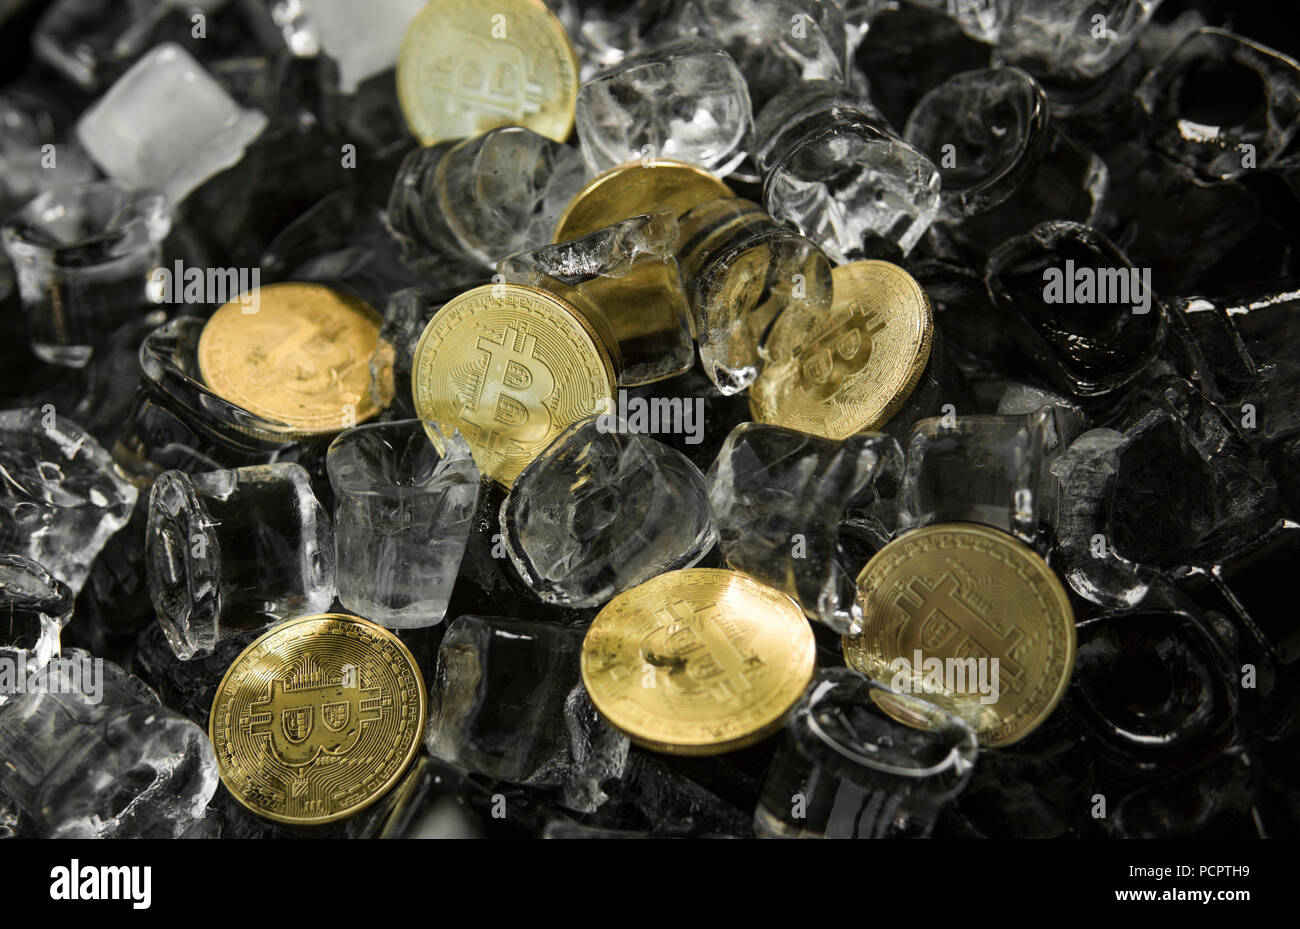 Many gold bitcoin coins on ice background. Freeze. Blockchain mining. Digital money and virtual cryptocurrency concept. Iinvestment. Bussiness, commercial - Stock Image